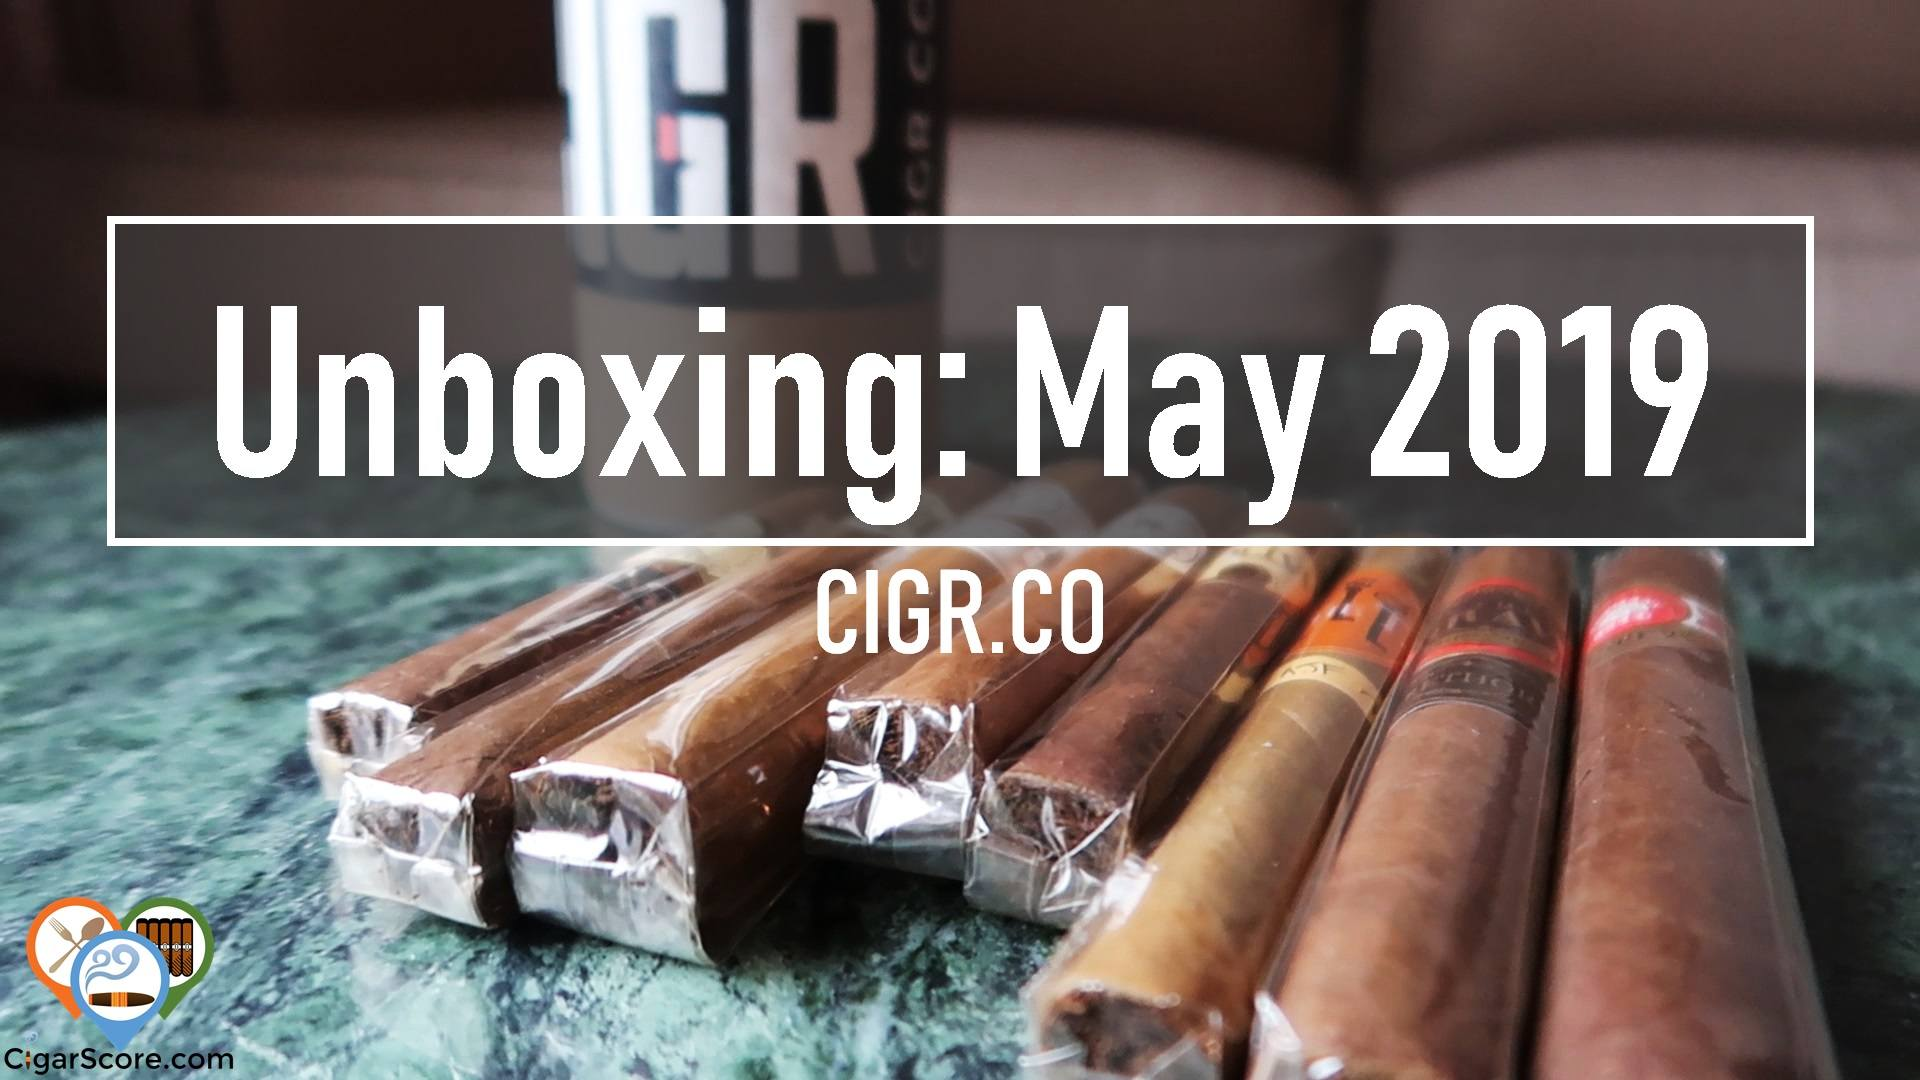 unboxing cigrco may 2019